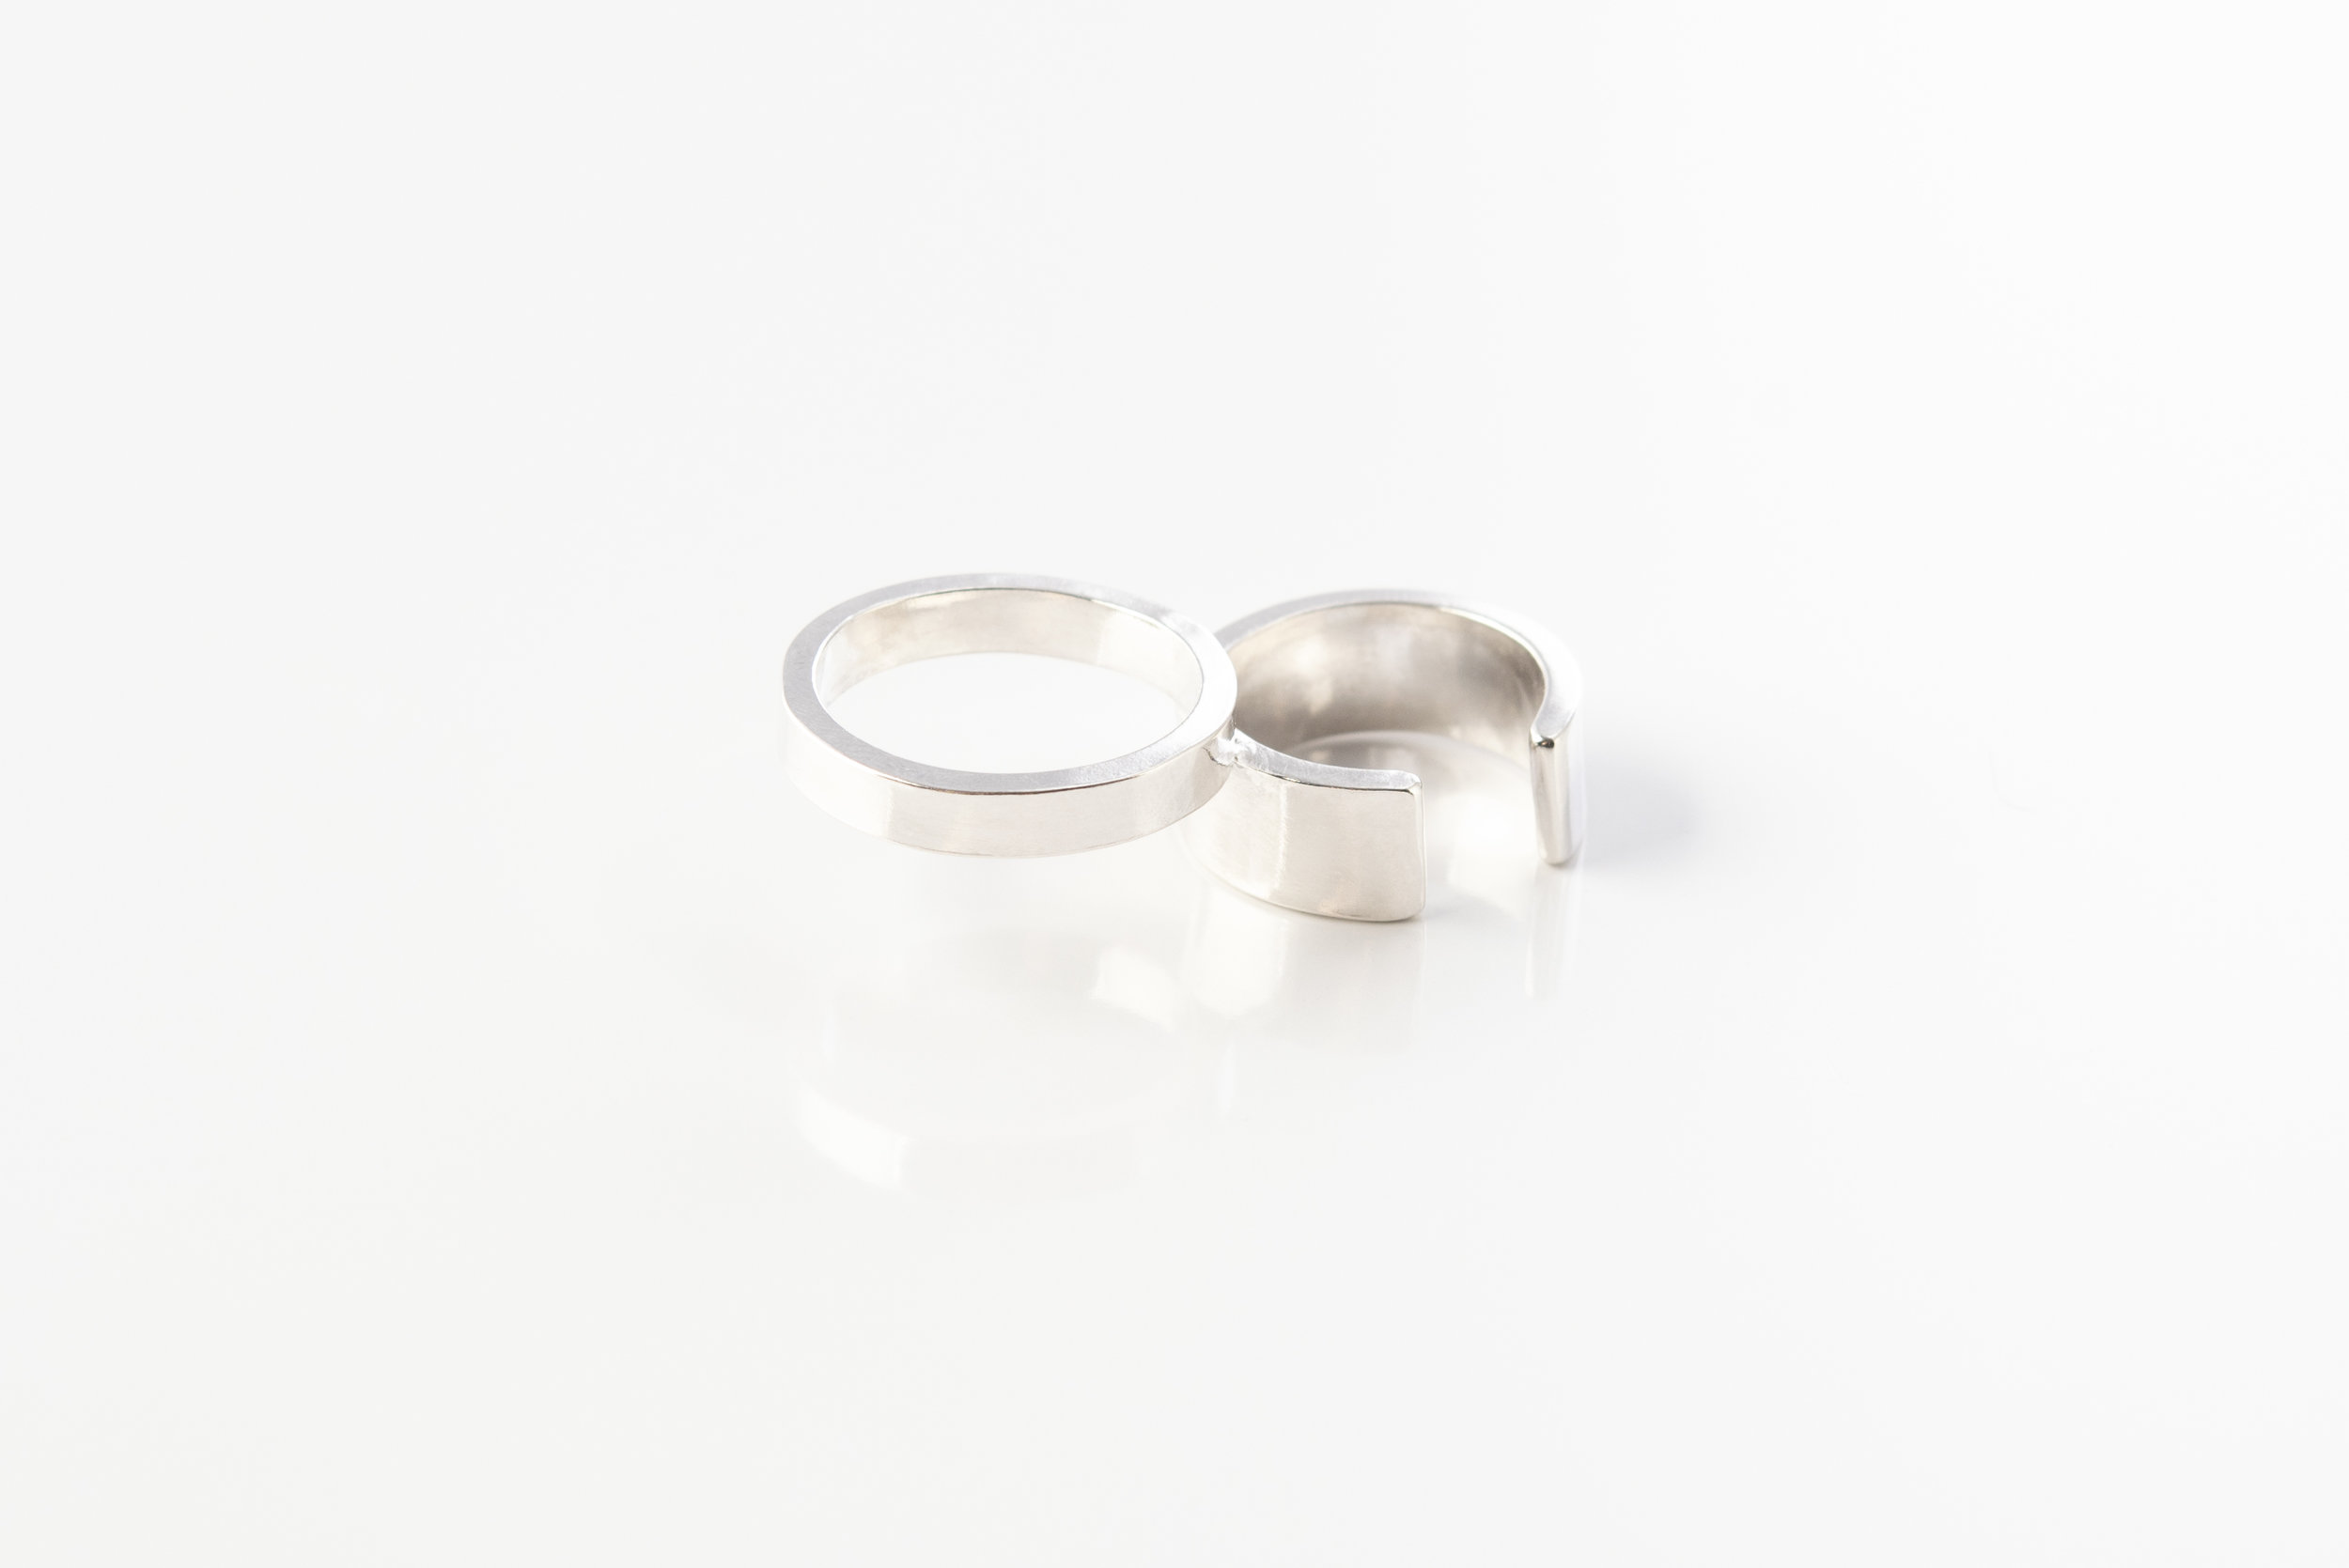 19_Ulterior_double band ring_7.jpg